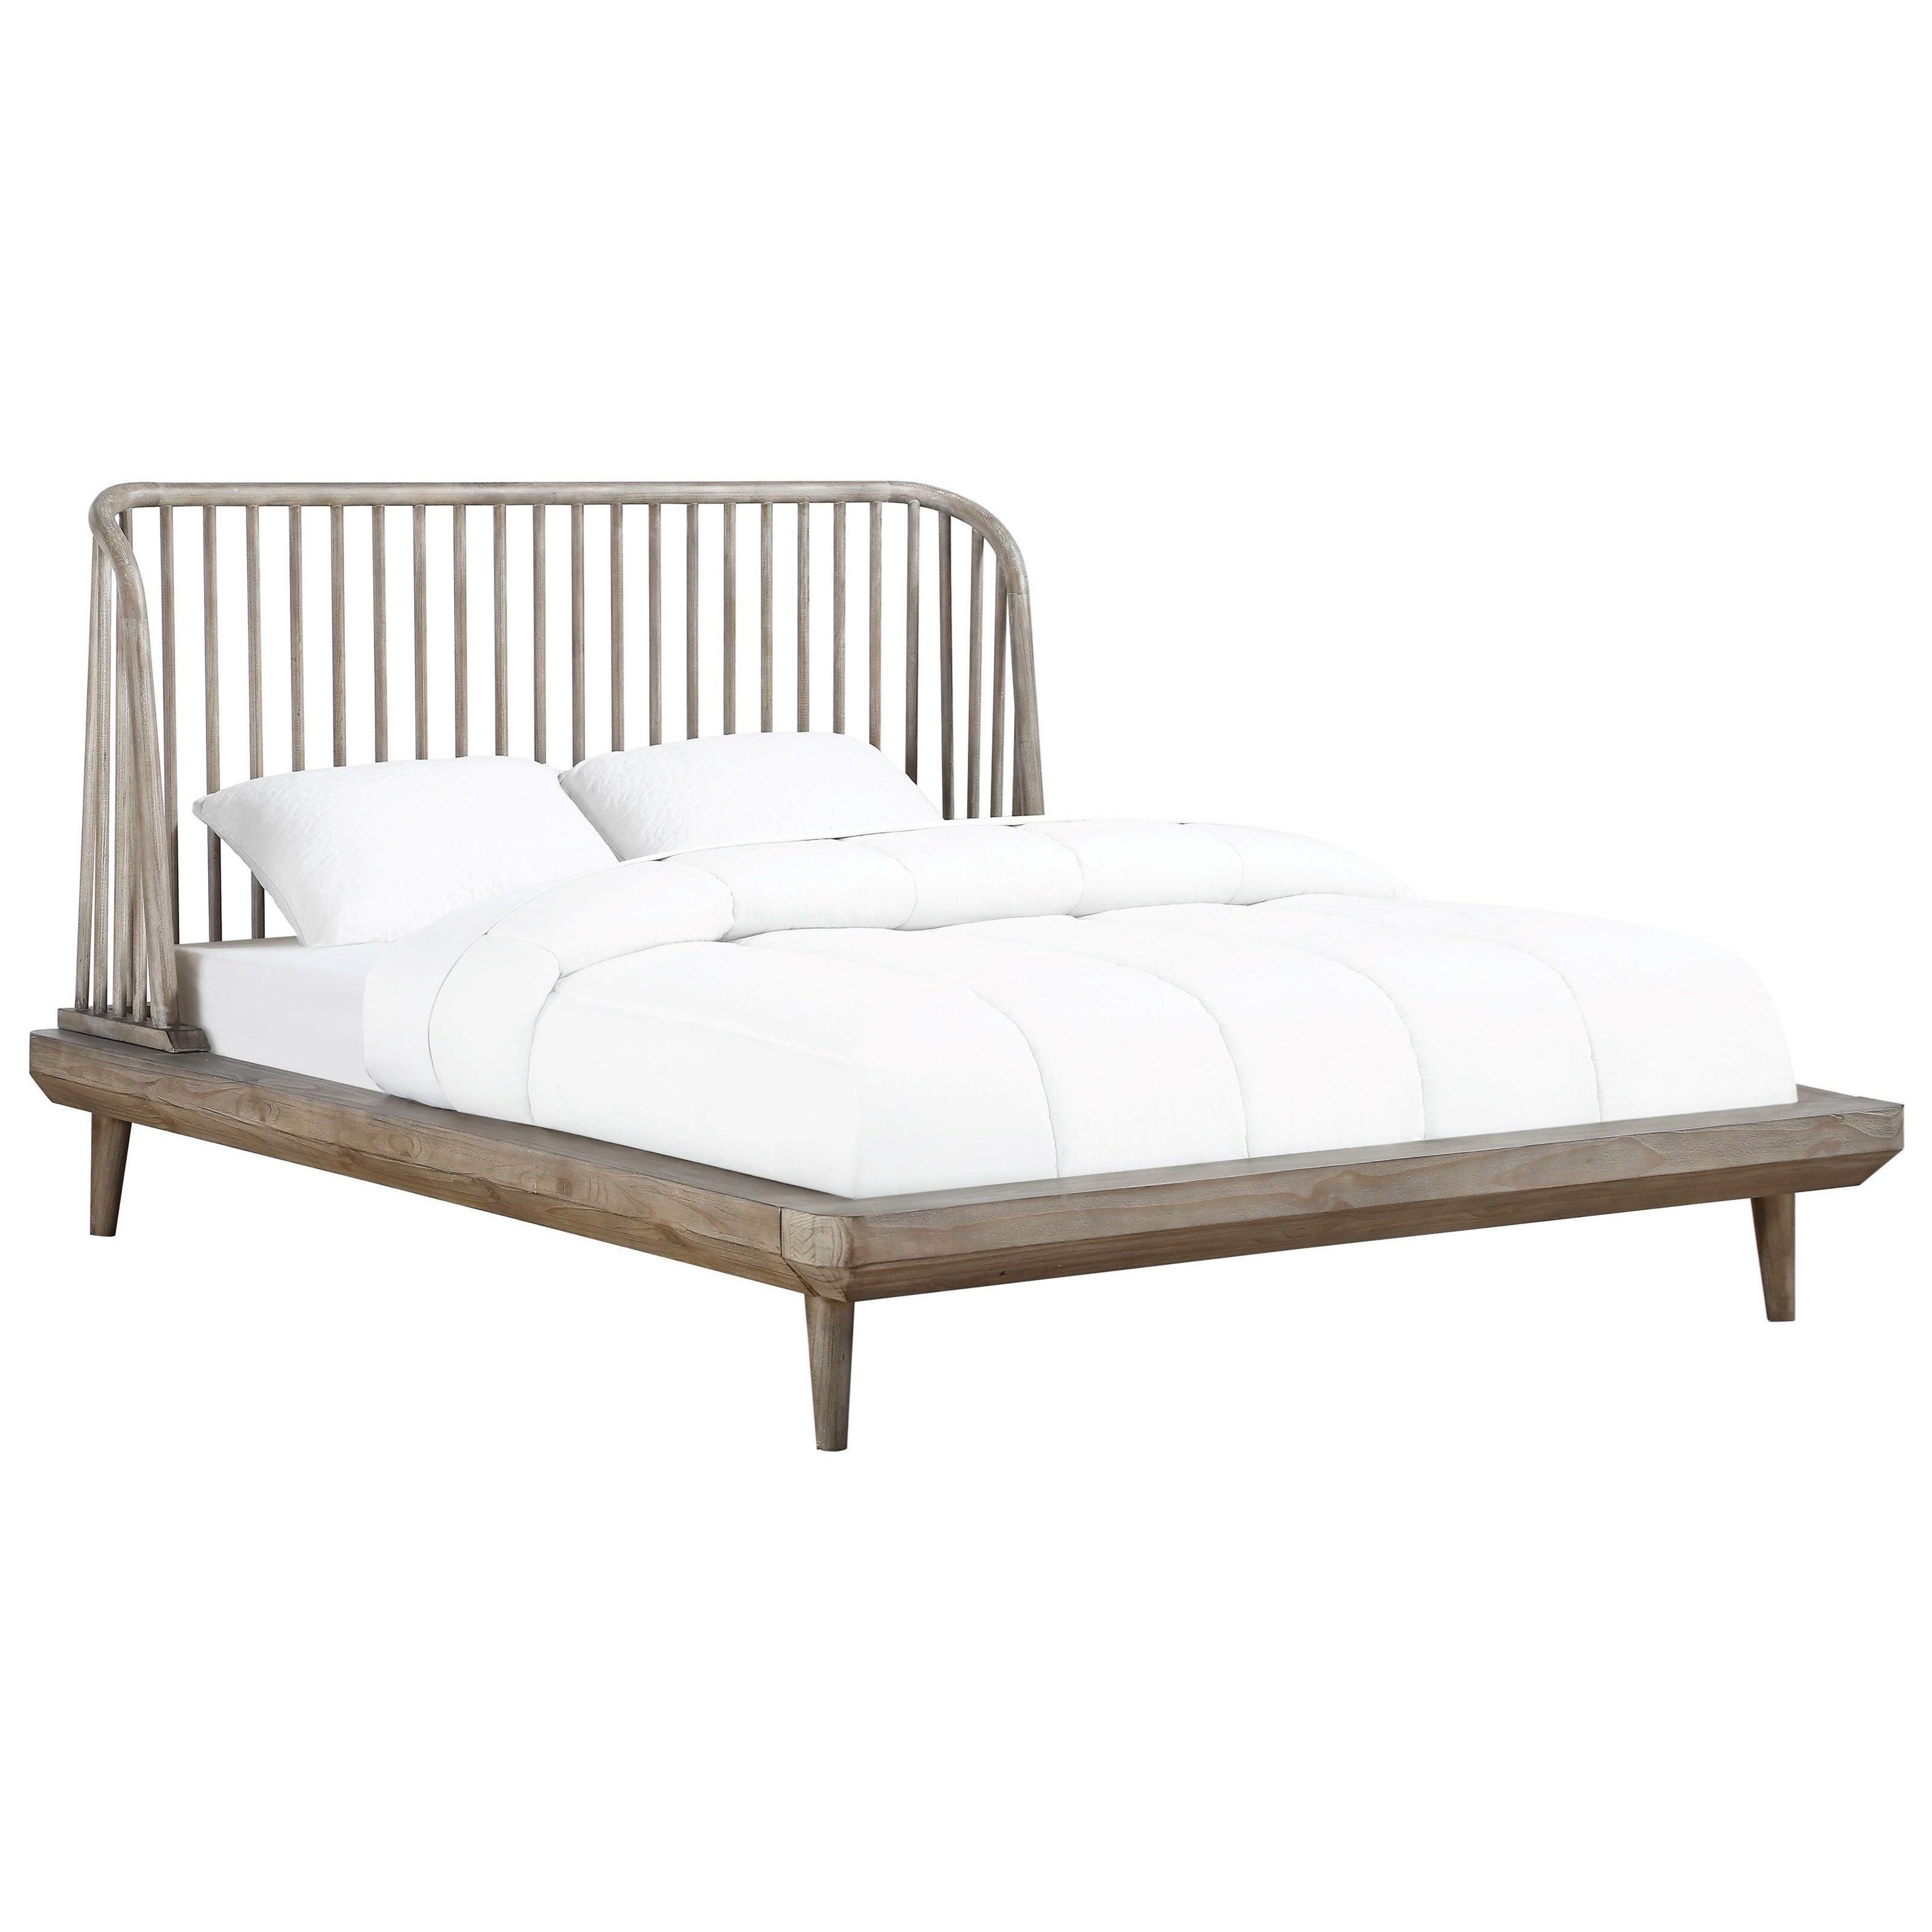 Picture of: Modus International Spindle Queen Platform Bed With Spindle Headboard A1 Furniture Mattress Platform Beds Low Profile Beds